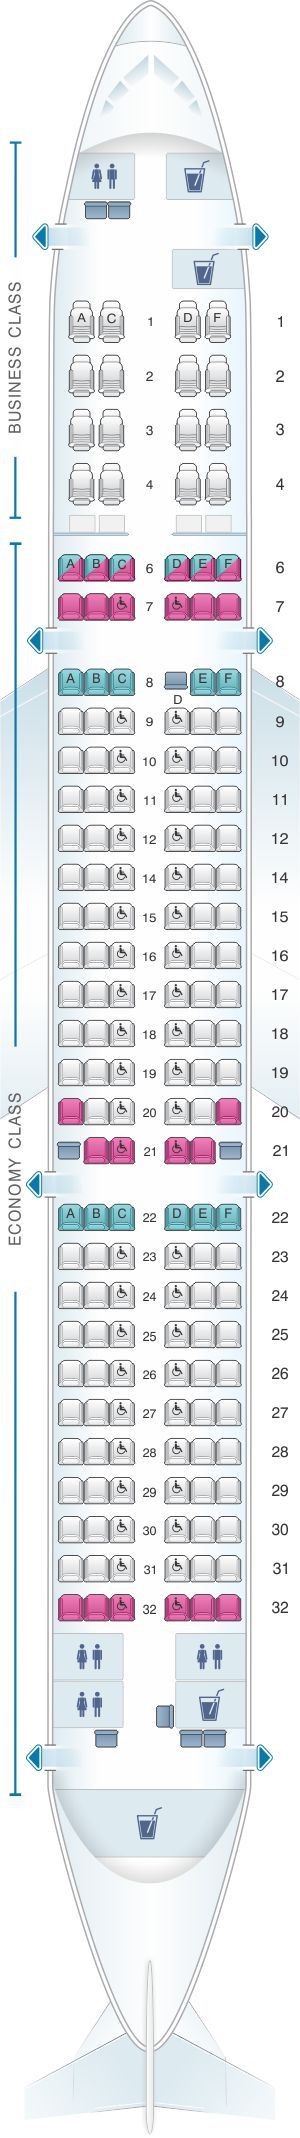 Seat Map SriLankan Airlines Airbus A321 231